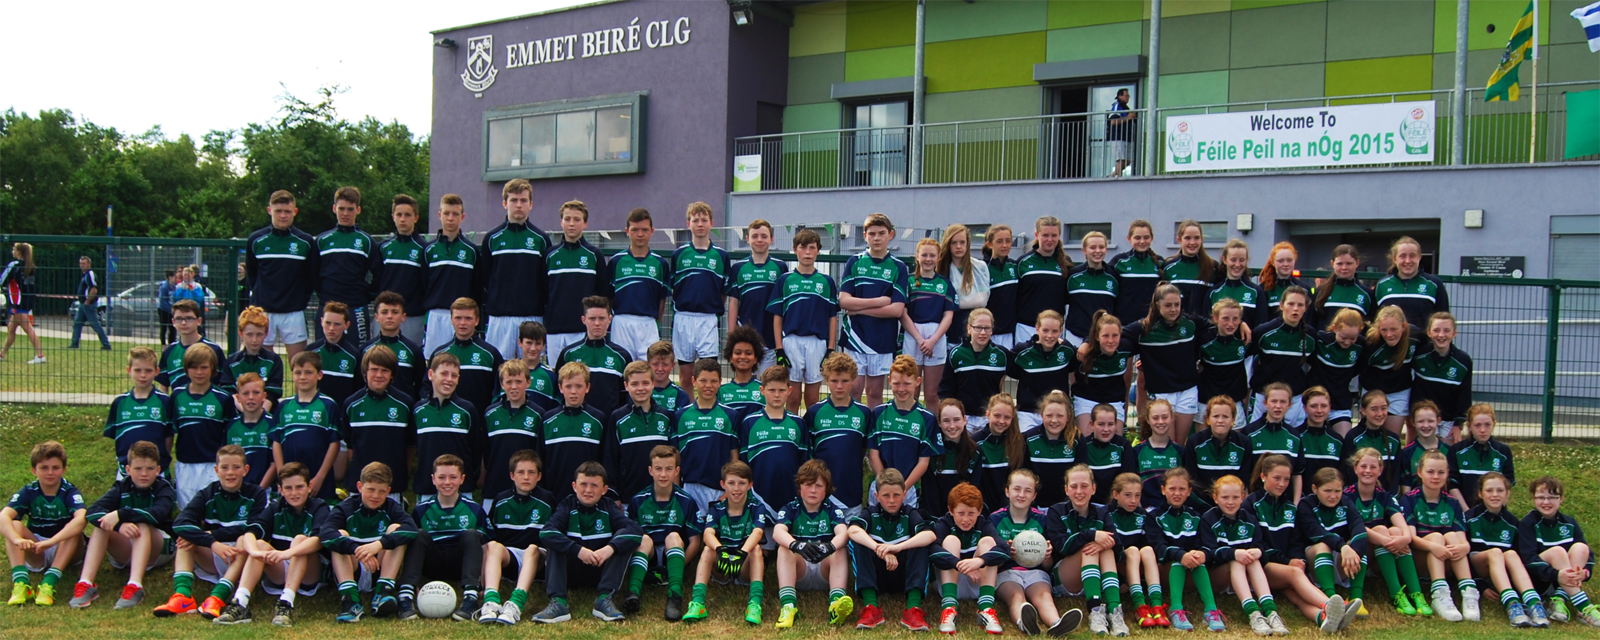 Feile 2015Teams